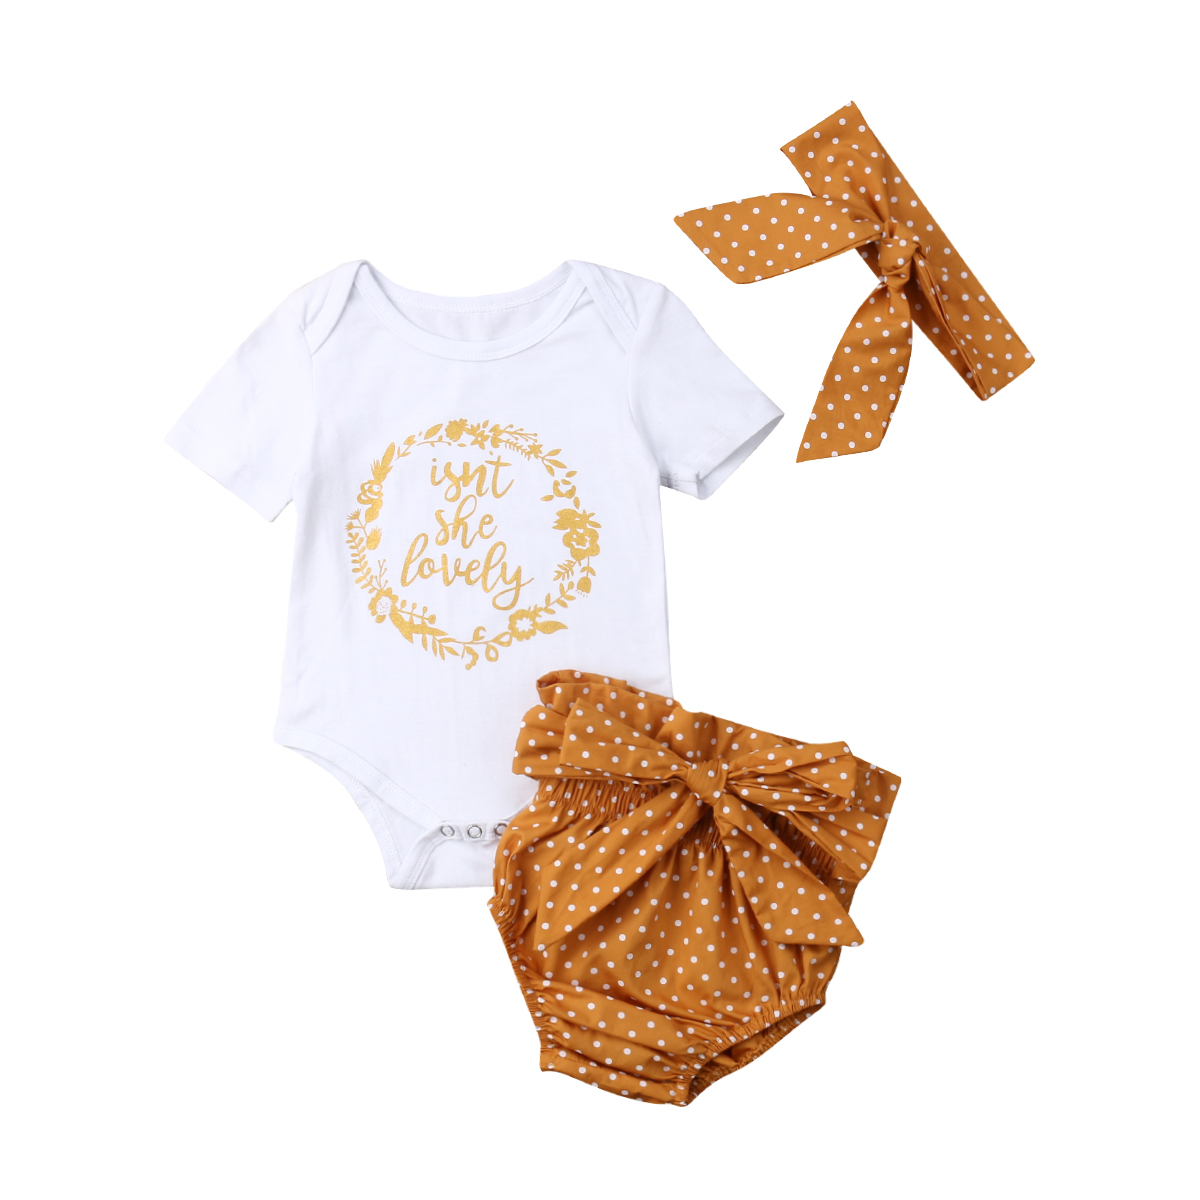 Pudcoco USPS Fast Shipping Hot Selling 0-18M Newborn Infant Baby Girls Outfit Clothes Tops Romper Jumpsuit Bodysuit+Pants Set